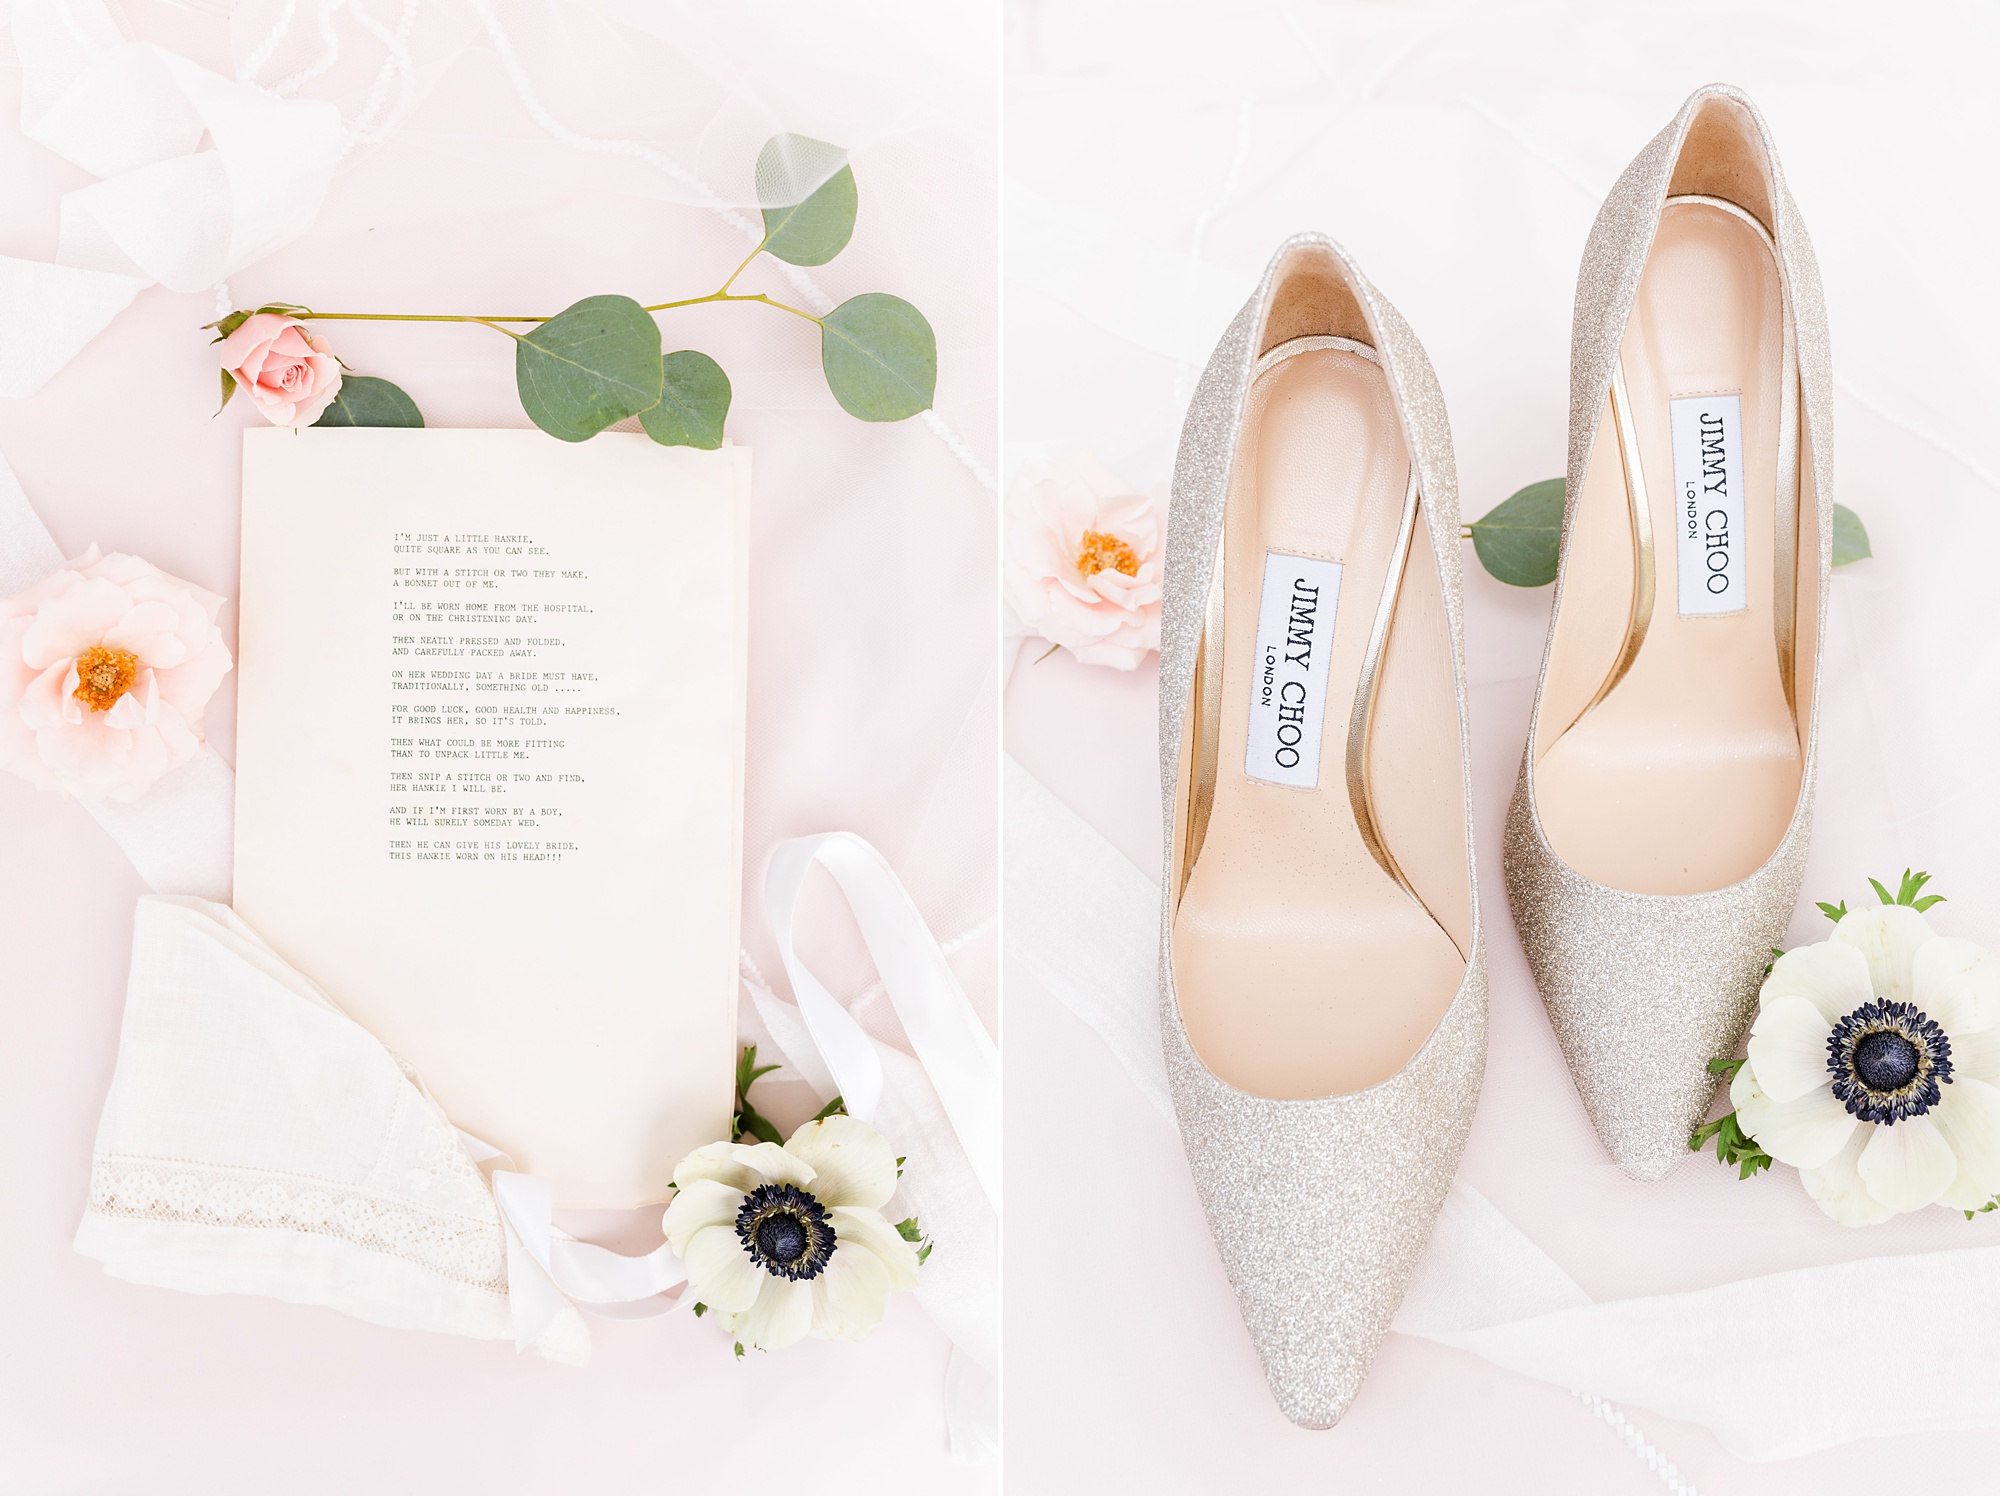 spring wedding day details and bride's shoes